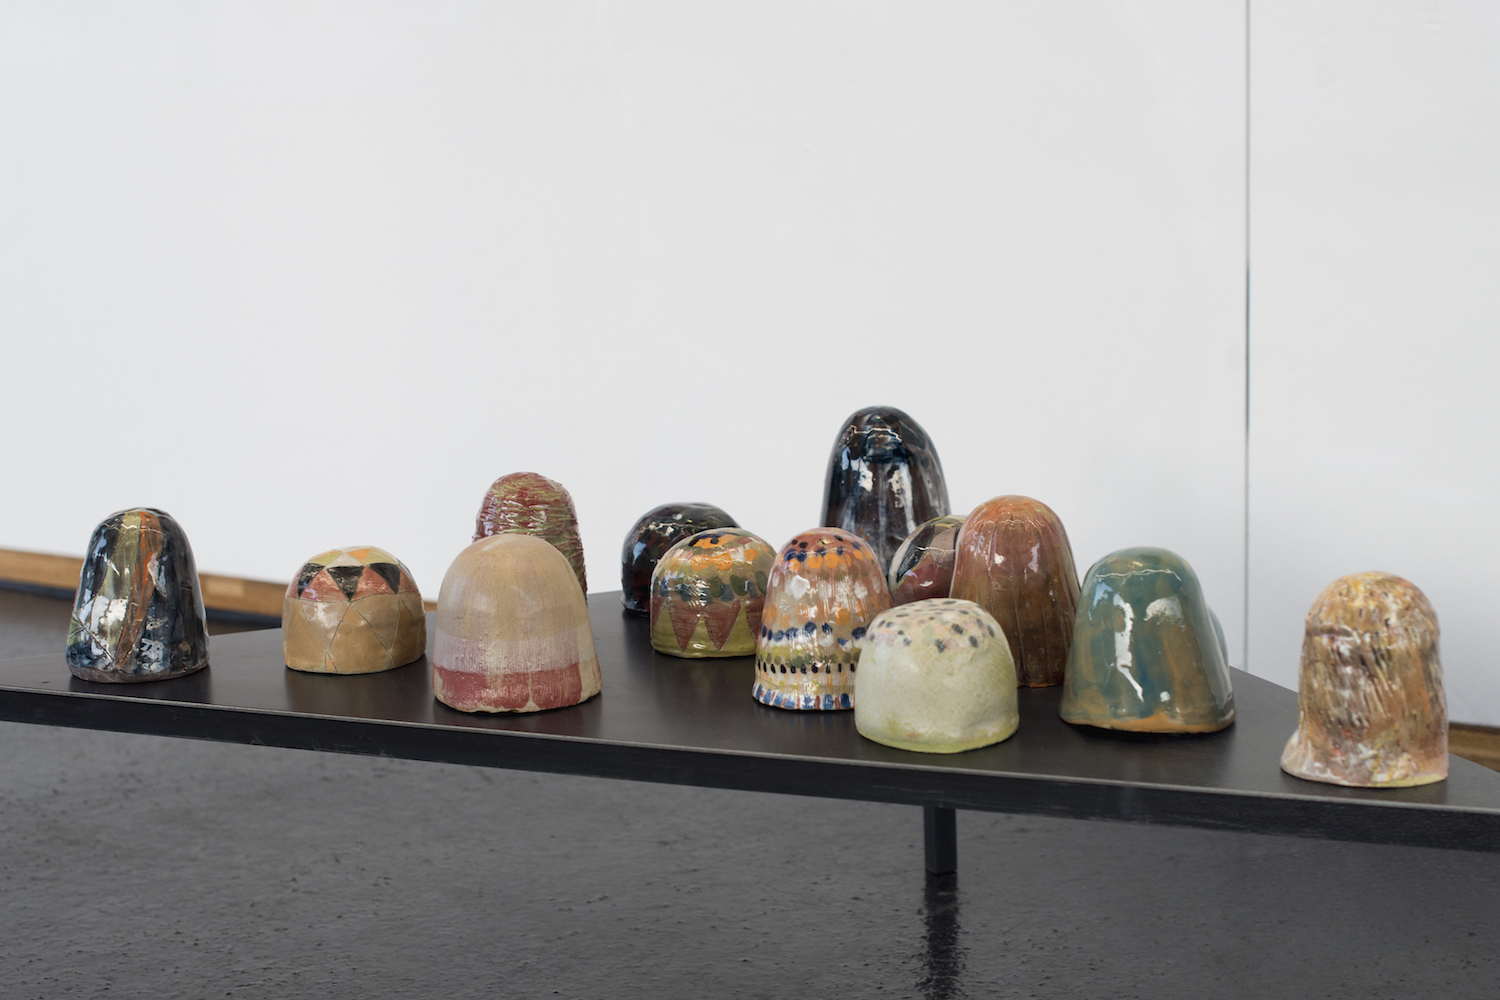 Sara Gassmann, WÜNSCHELRUTEN (small), 2016. Glazed ceramic. Edition of 54.